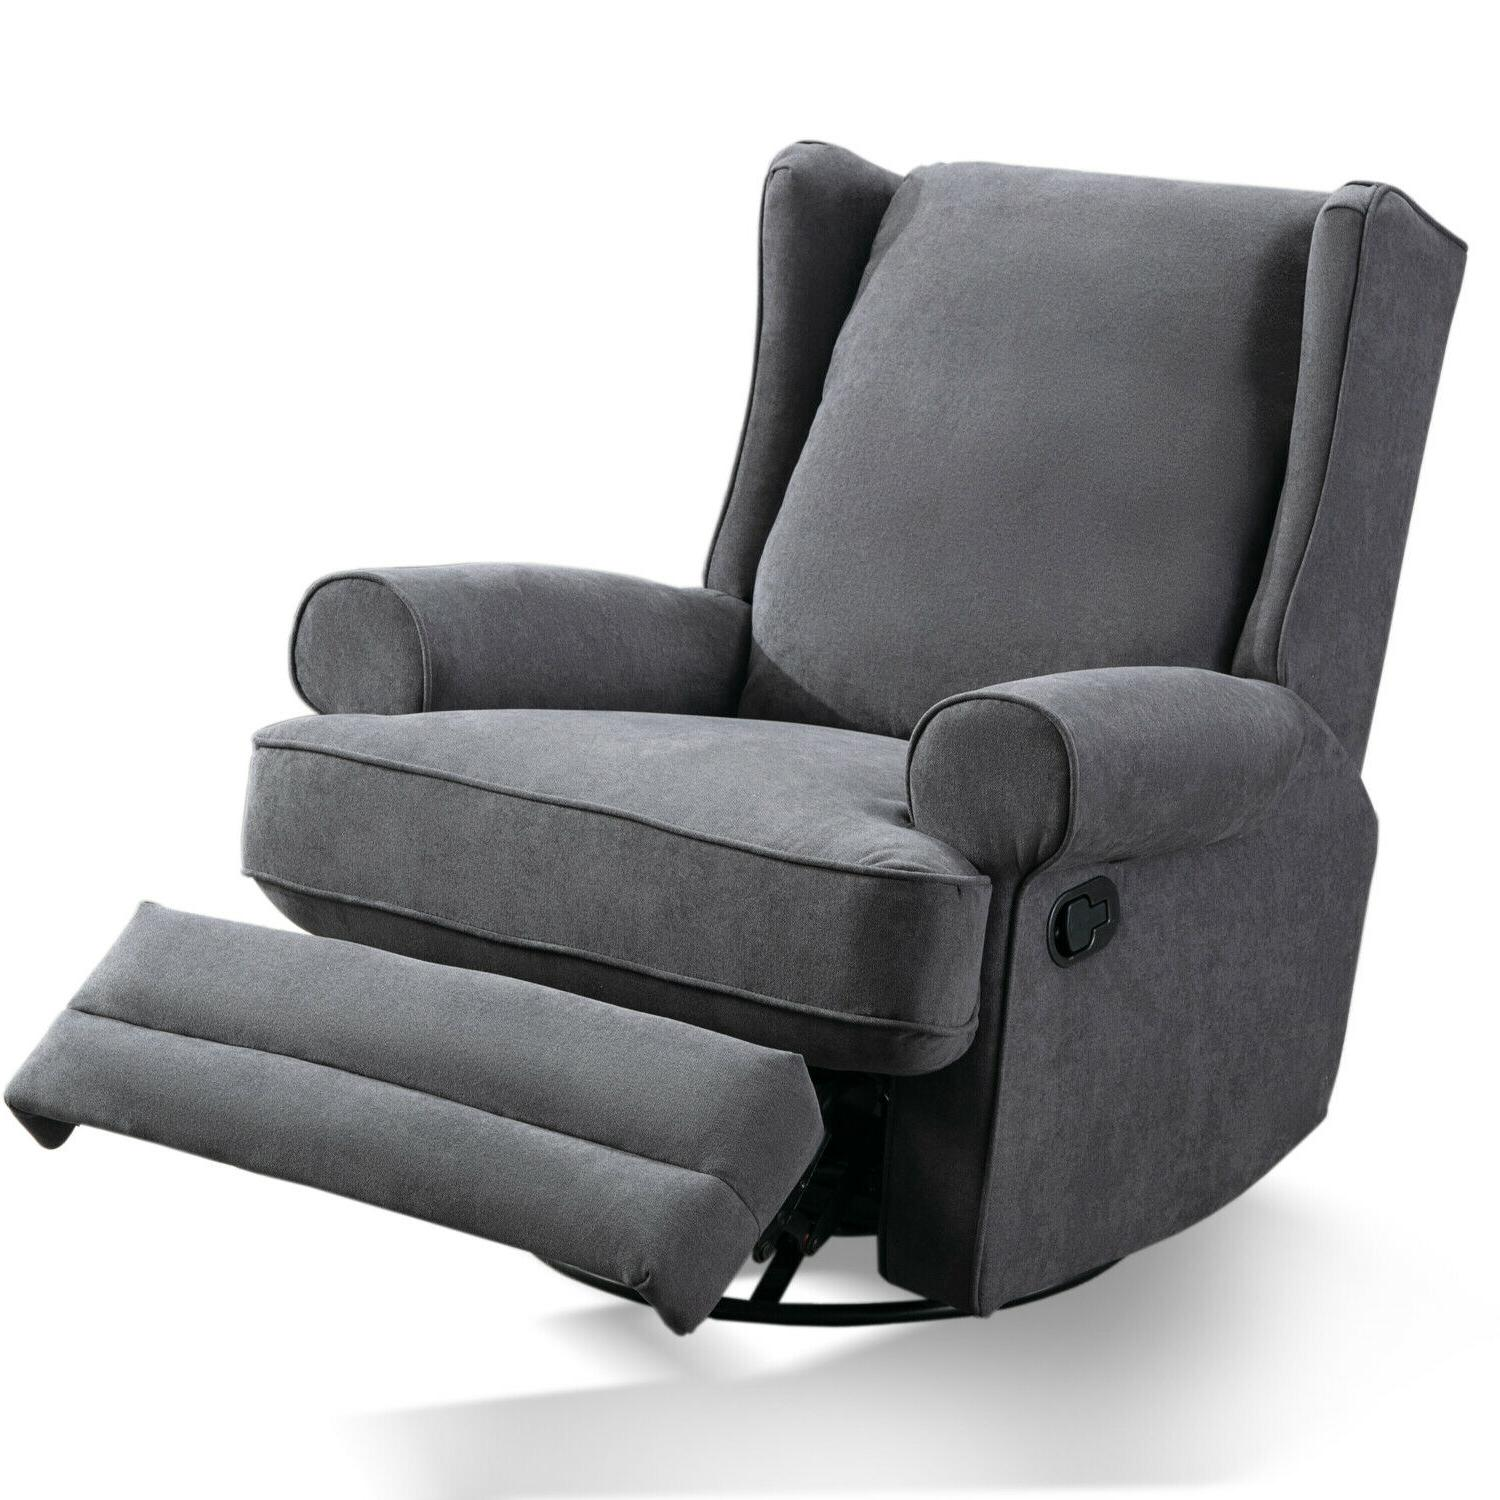 Swivel Baby Padded Seat Couch